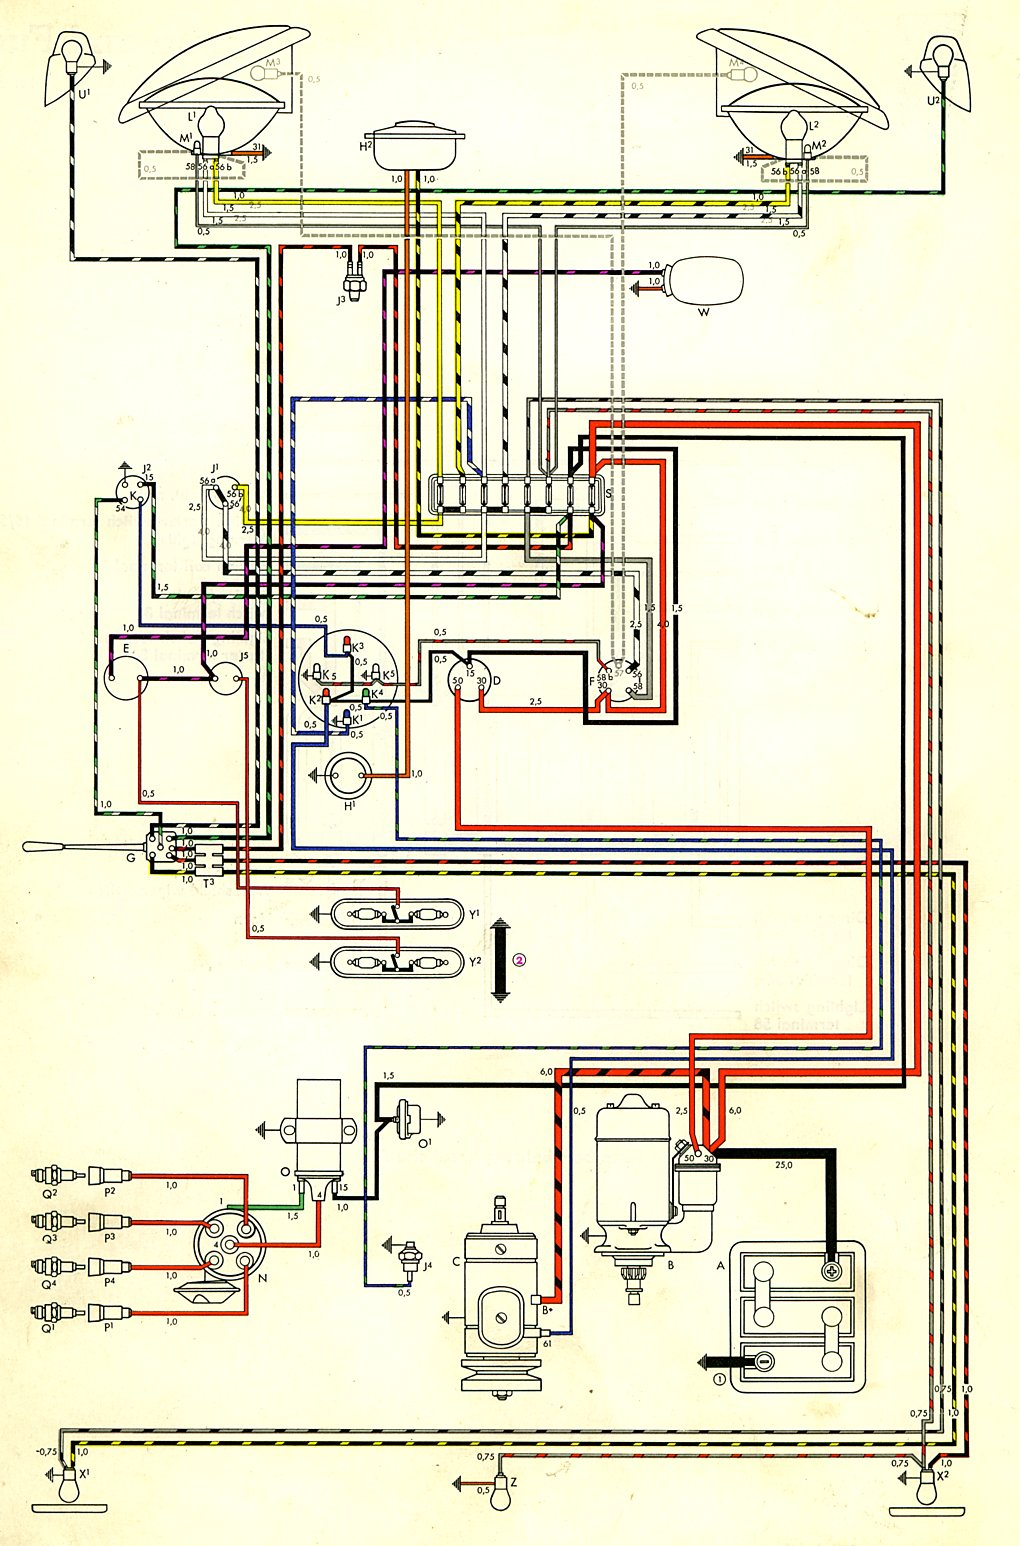 Vw Bus Engine Diagram Wiring Will Be A Thing 1978 78 Type 4 1979 Beetle